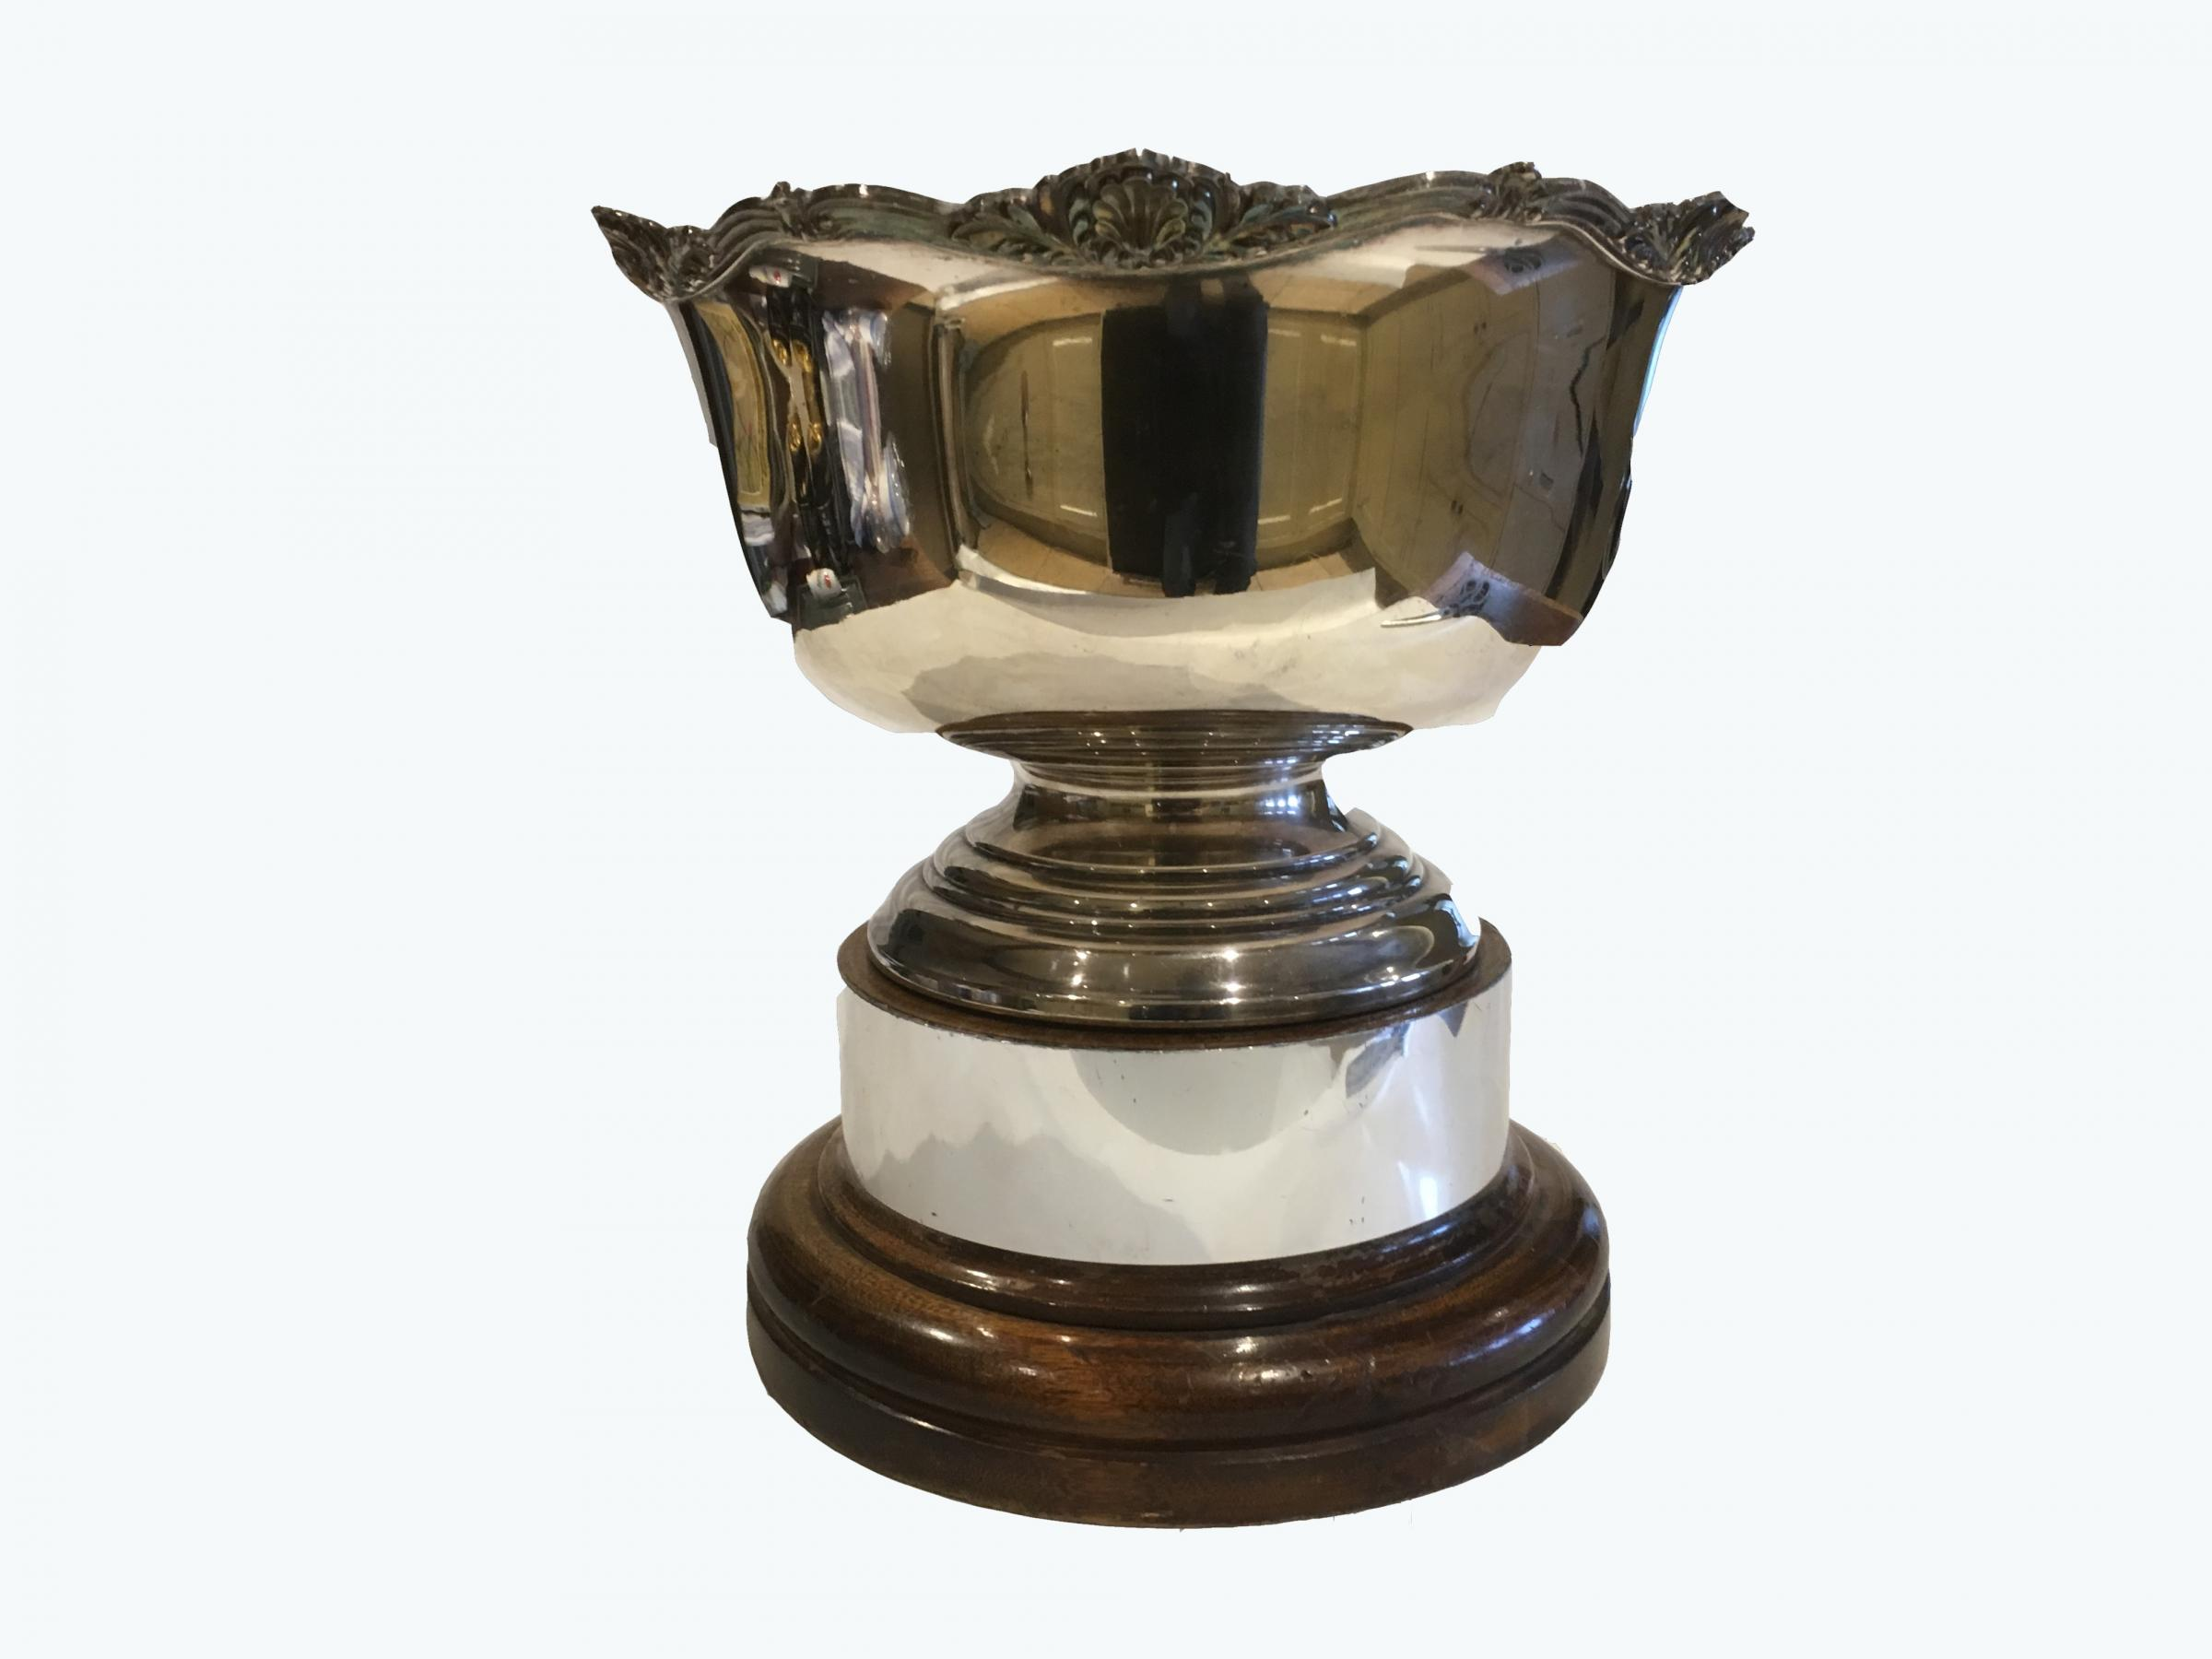 The Molly Rose Trophy